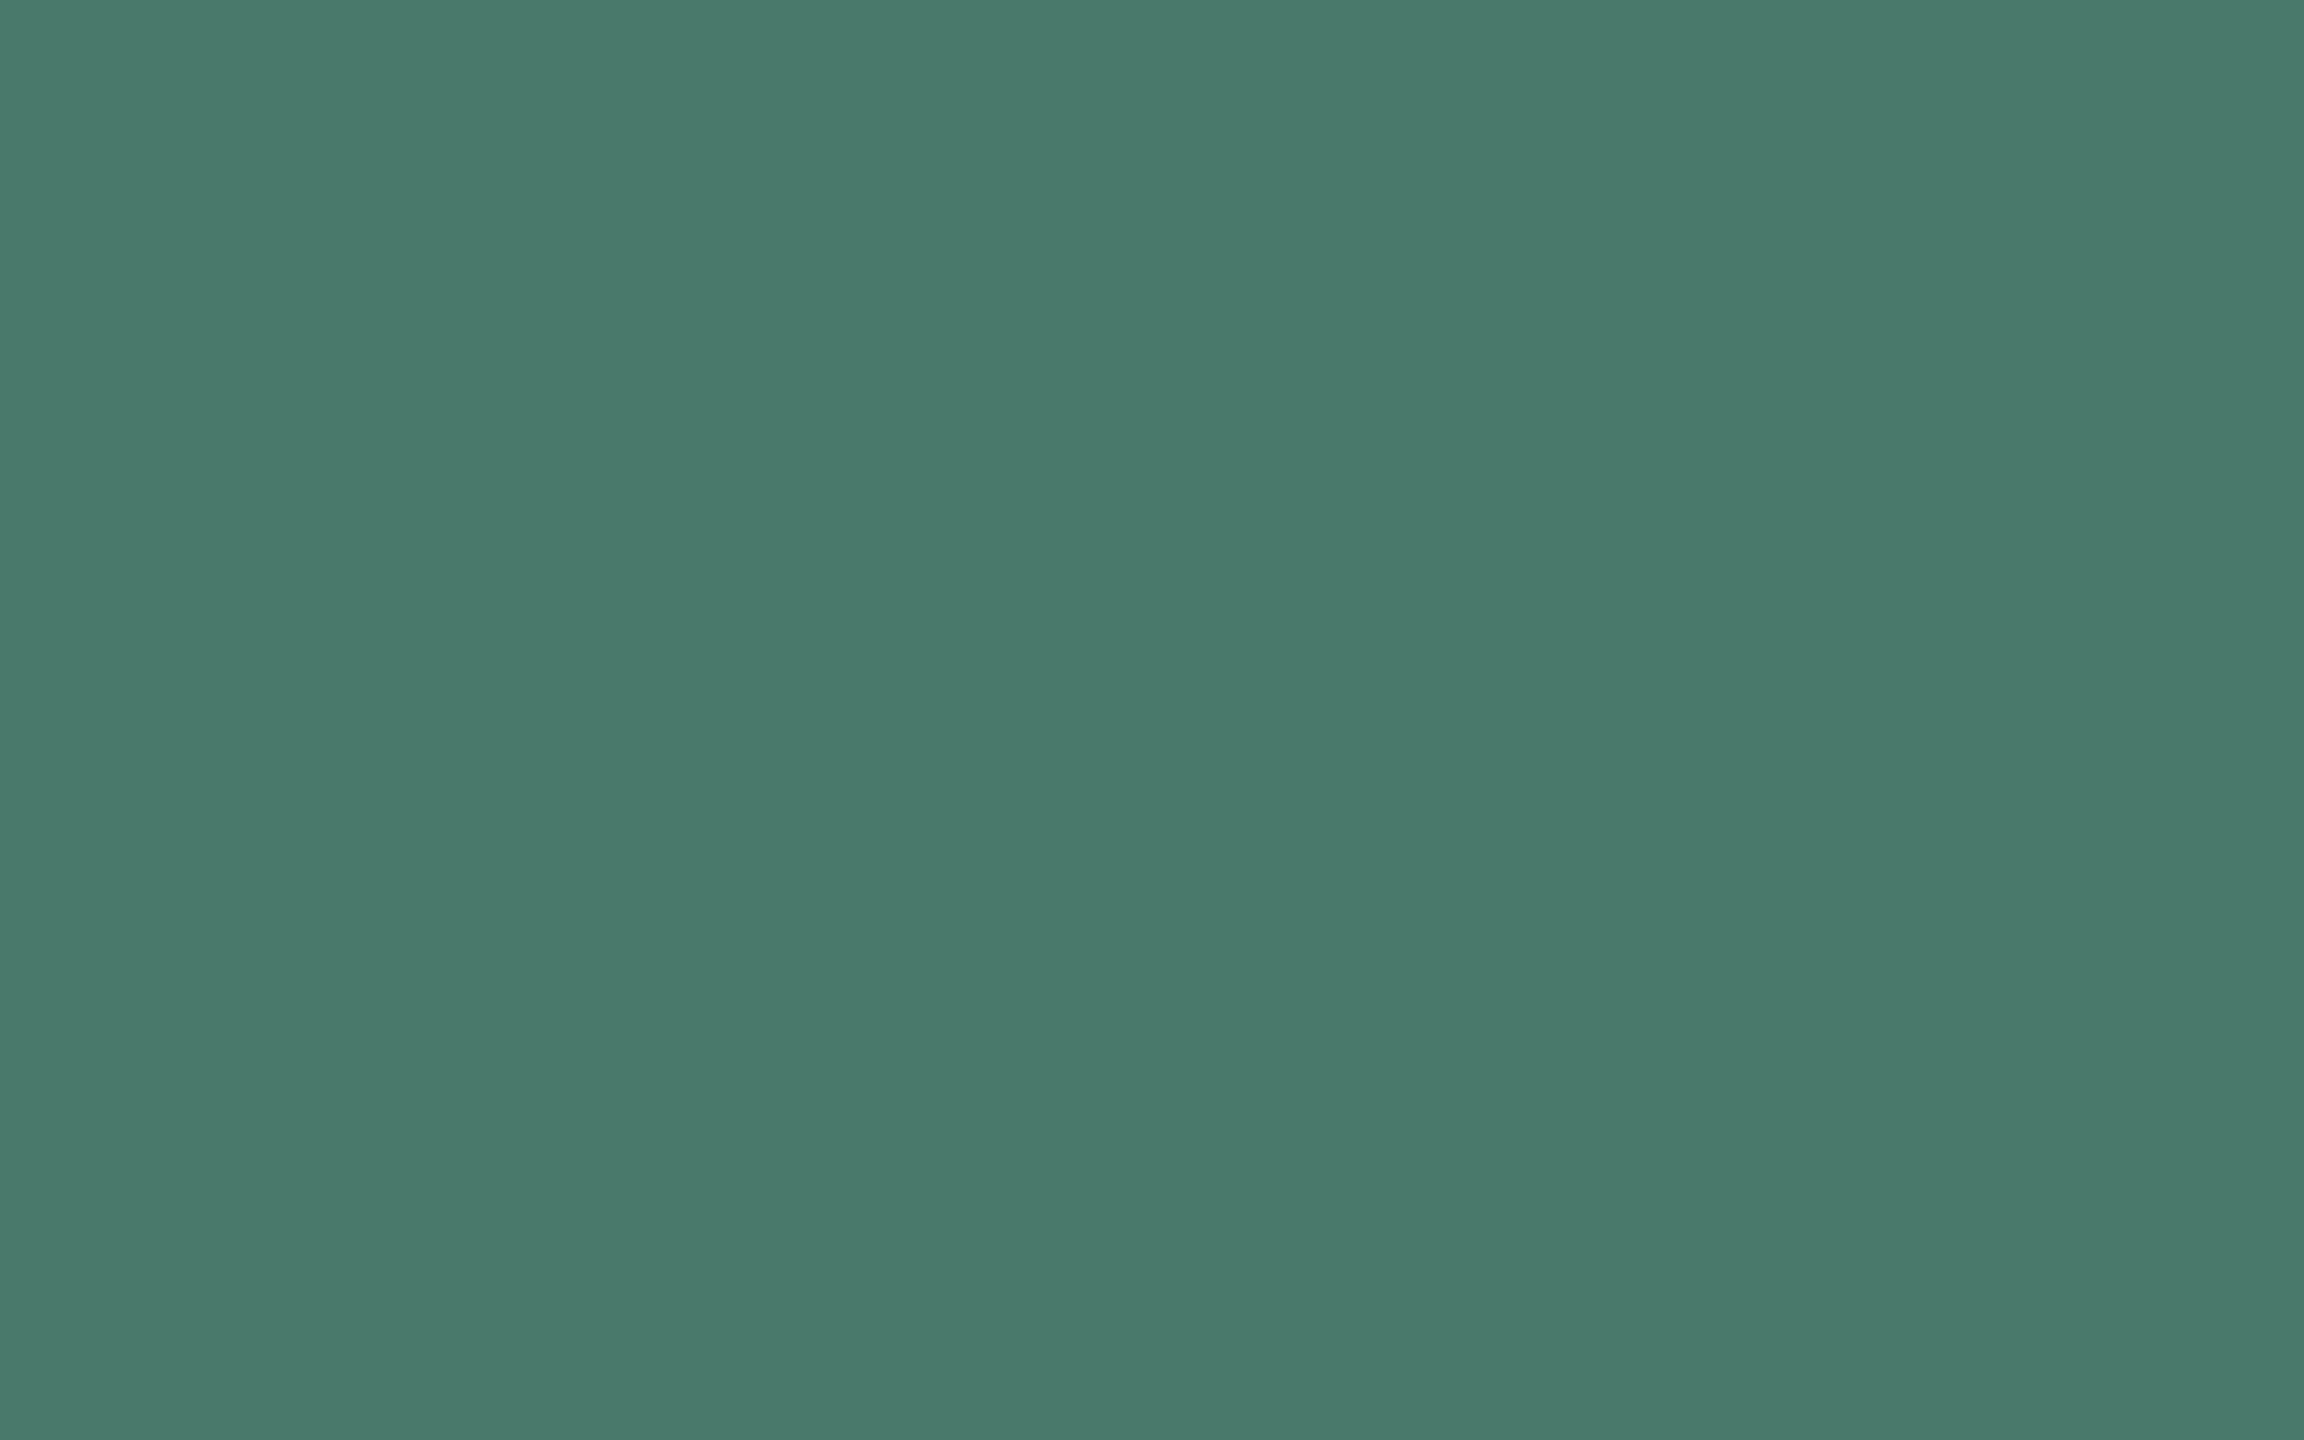 2304x1440 Hookers Green Solid Color Background